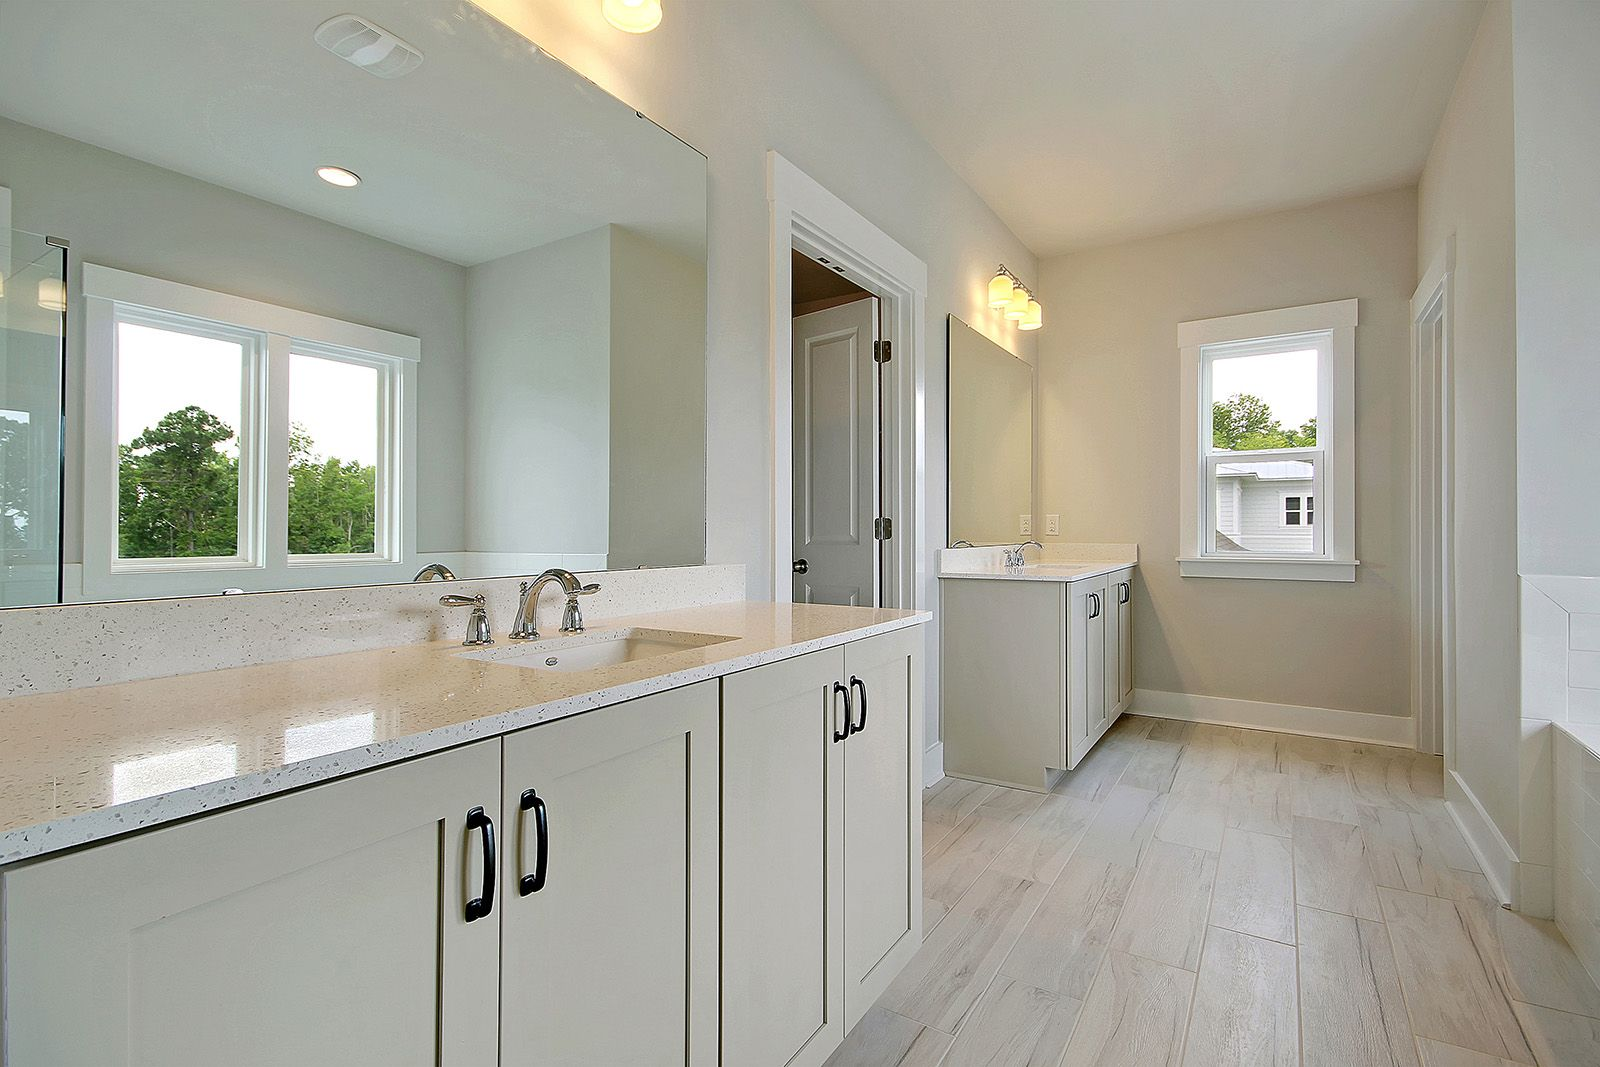 Bathroom featured in the Capers By Ashton Woods in Charleston, SC